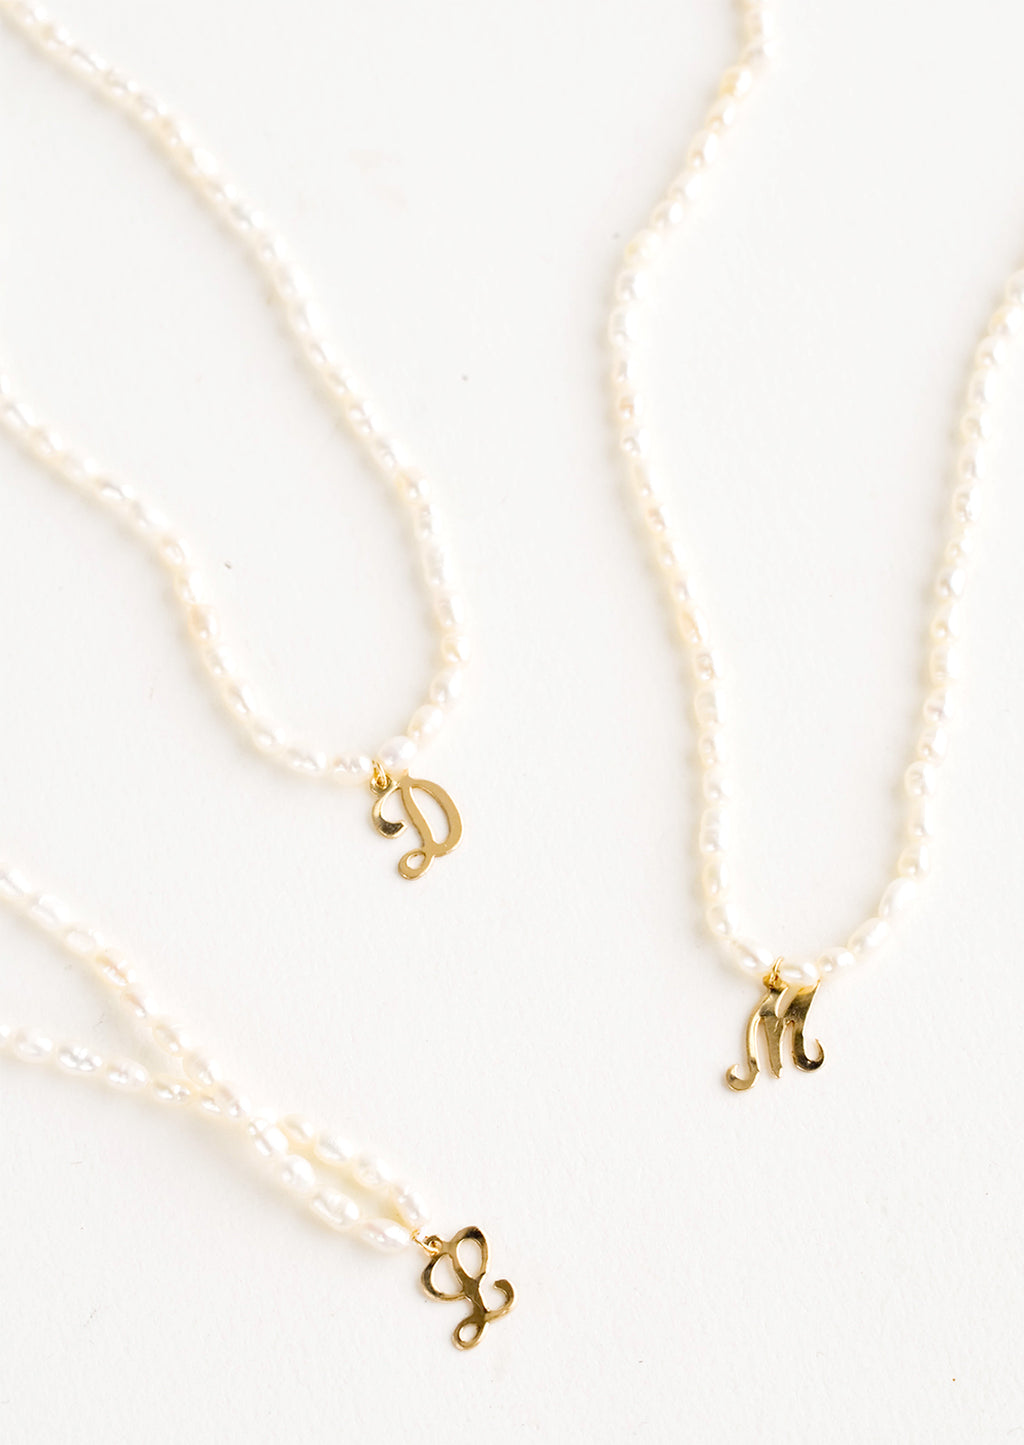 L: Quincy Pearl Initial Necklace